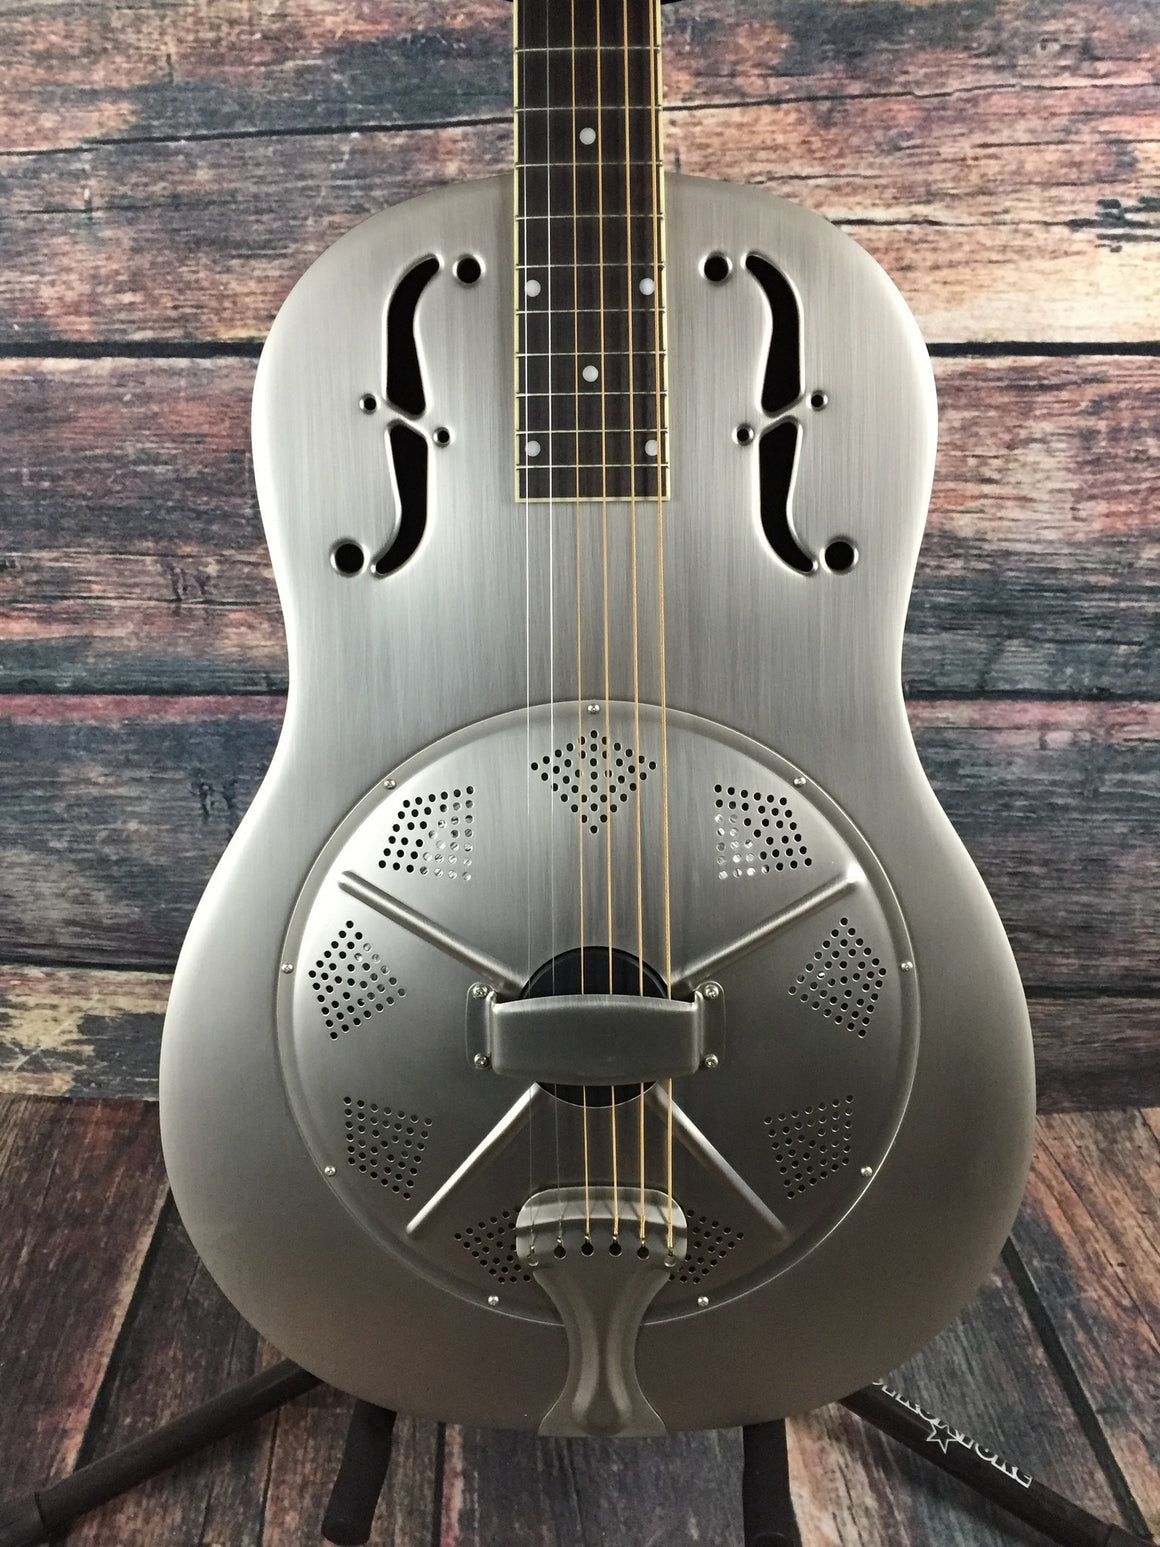 GoldTone Acoustic Guitar Gold Tone Left Handed Paul Beard GRS Resonator Guitar